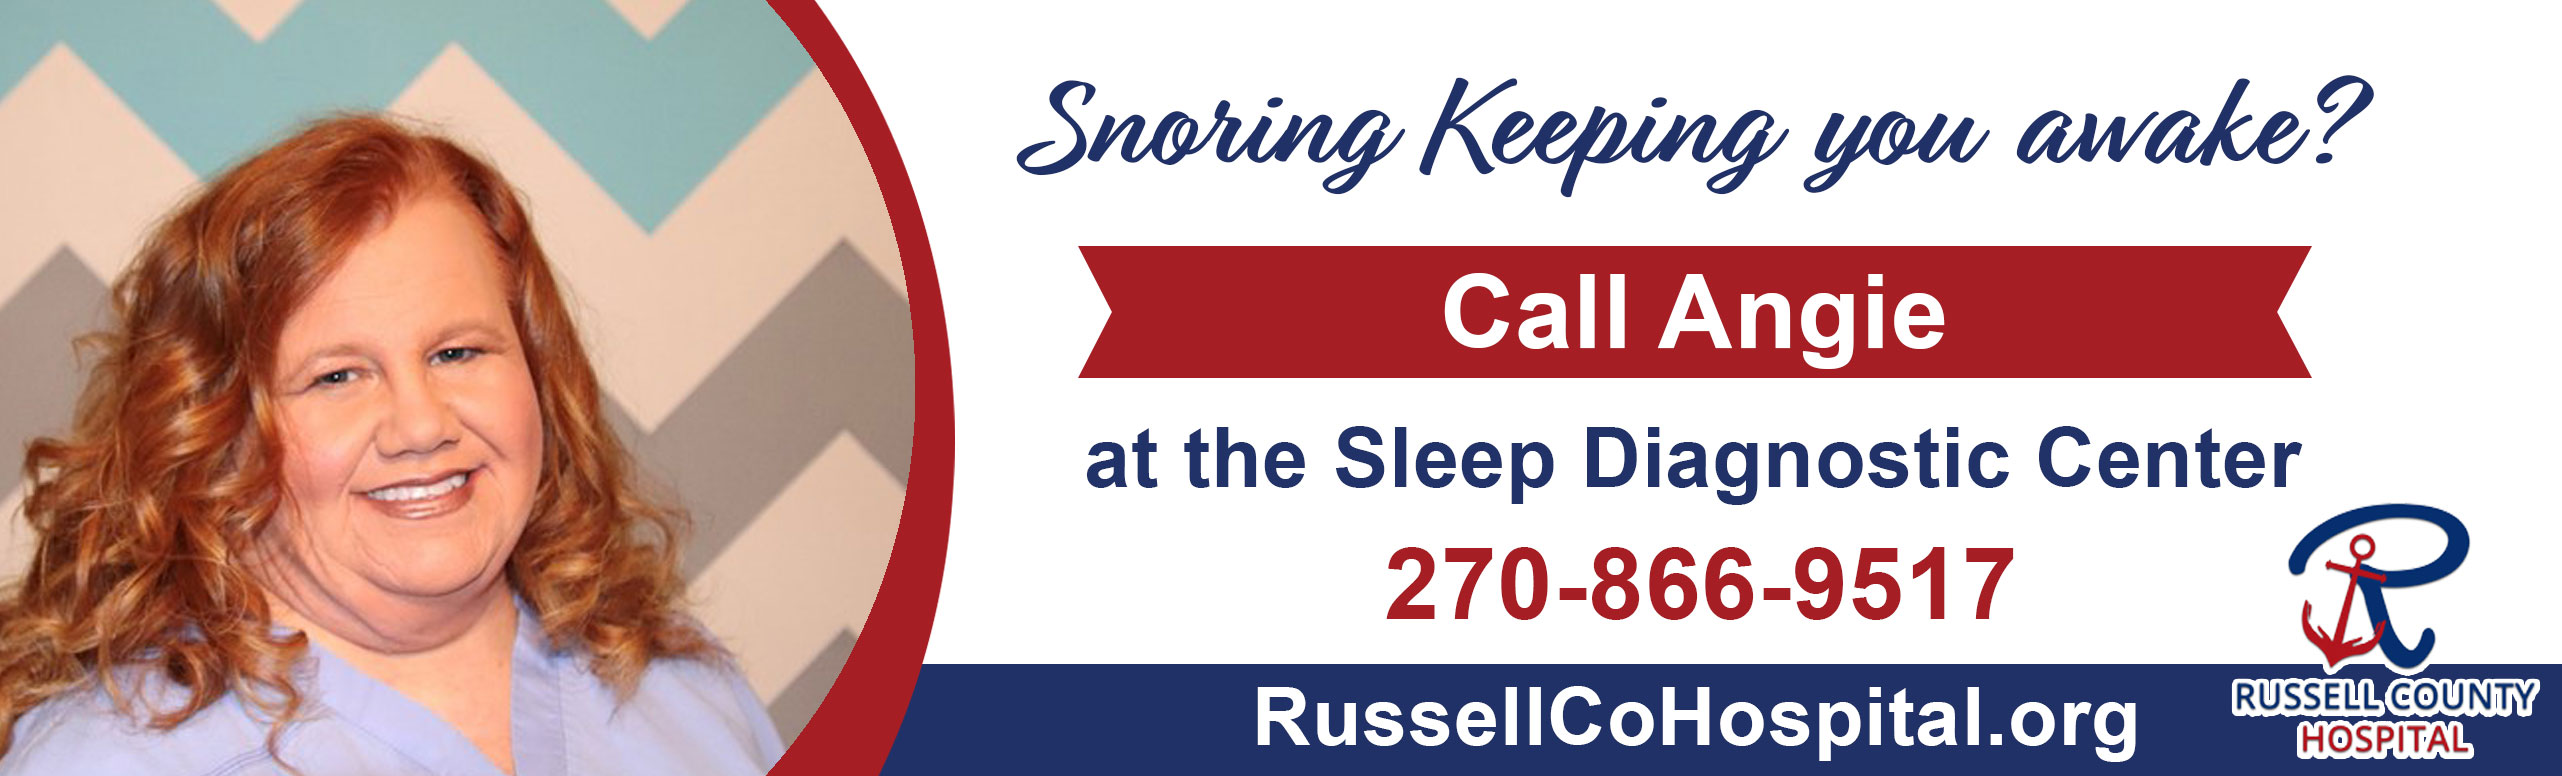 Snoring Keeping you awake?  Call Angie at the sleep diagnostic Center 270-866-9517.  RussellCoHospital.org  Pictured is Angie Smiling.